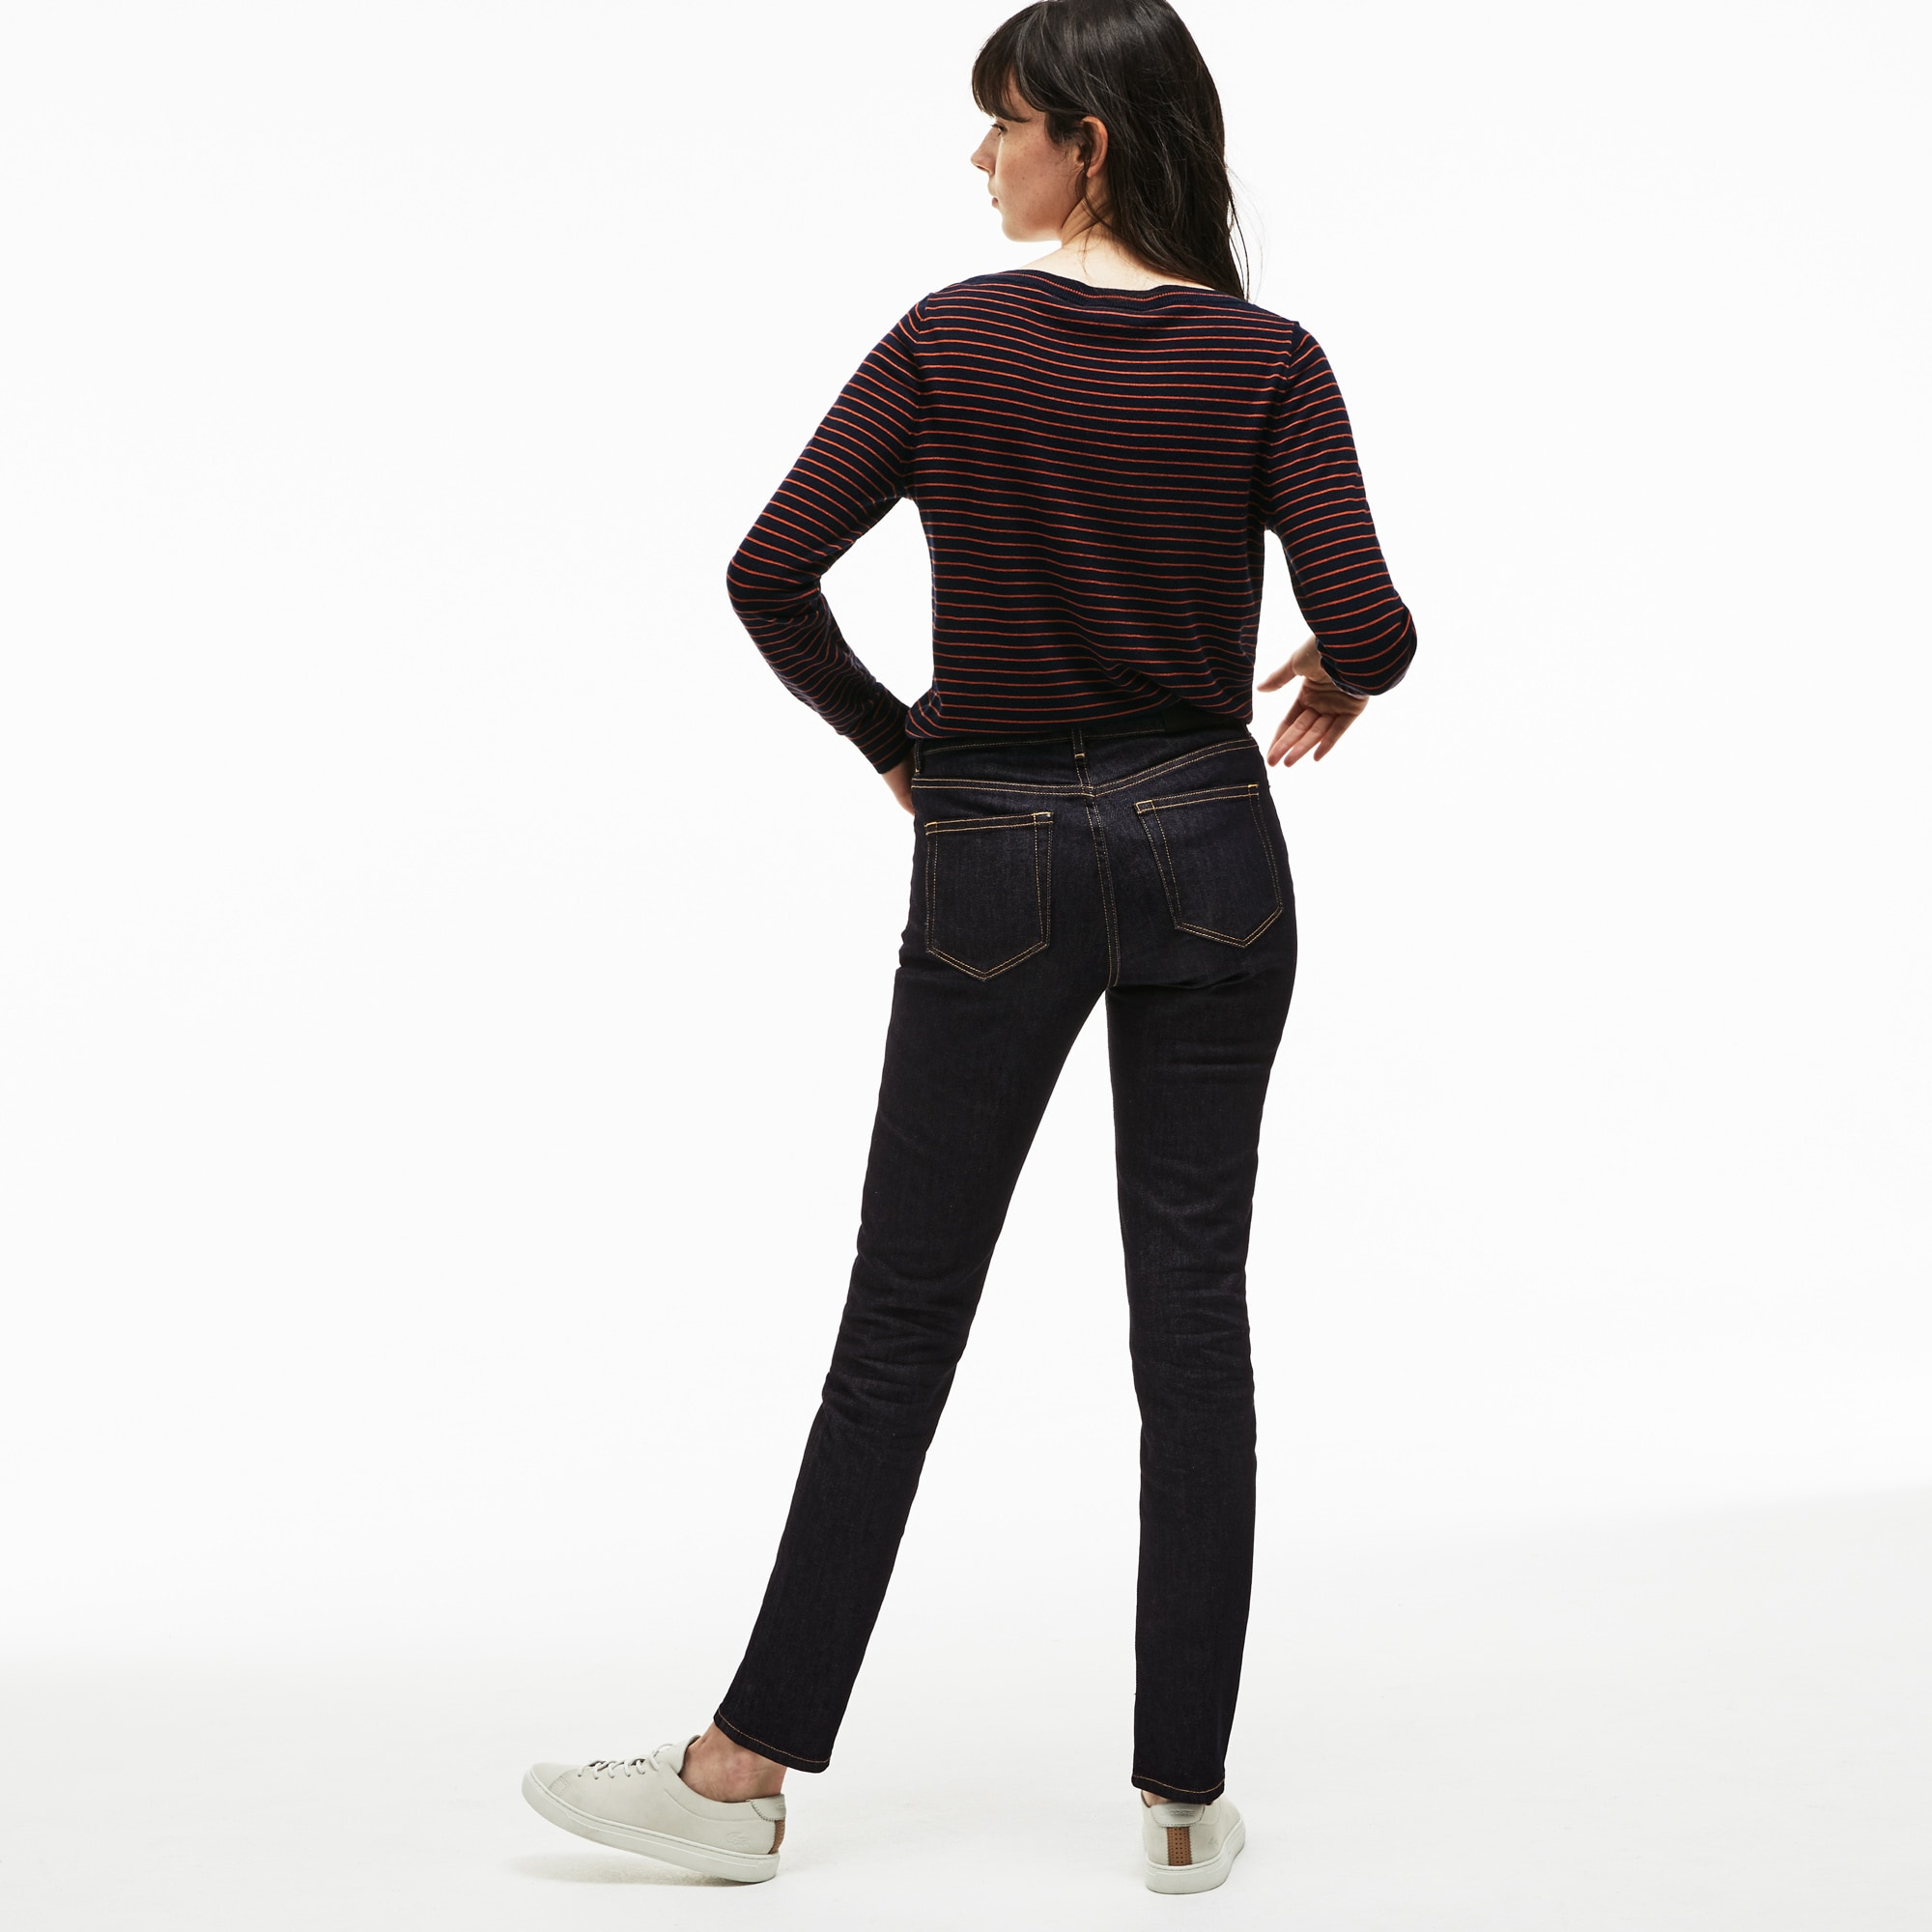 Damen Denim-Jeans aus Stretch-Baumwolle Slim Fit